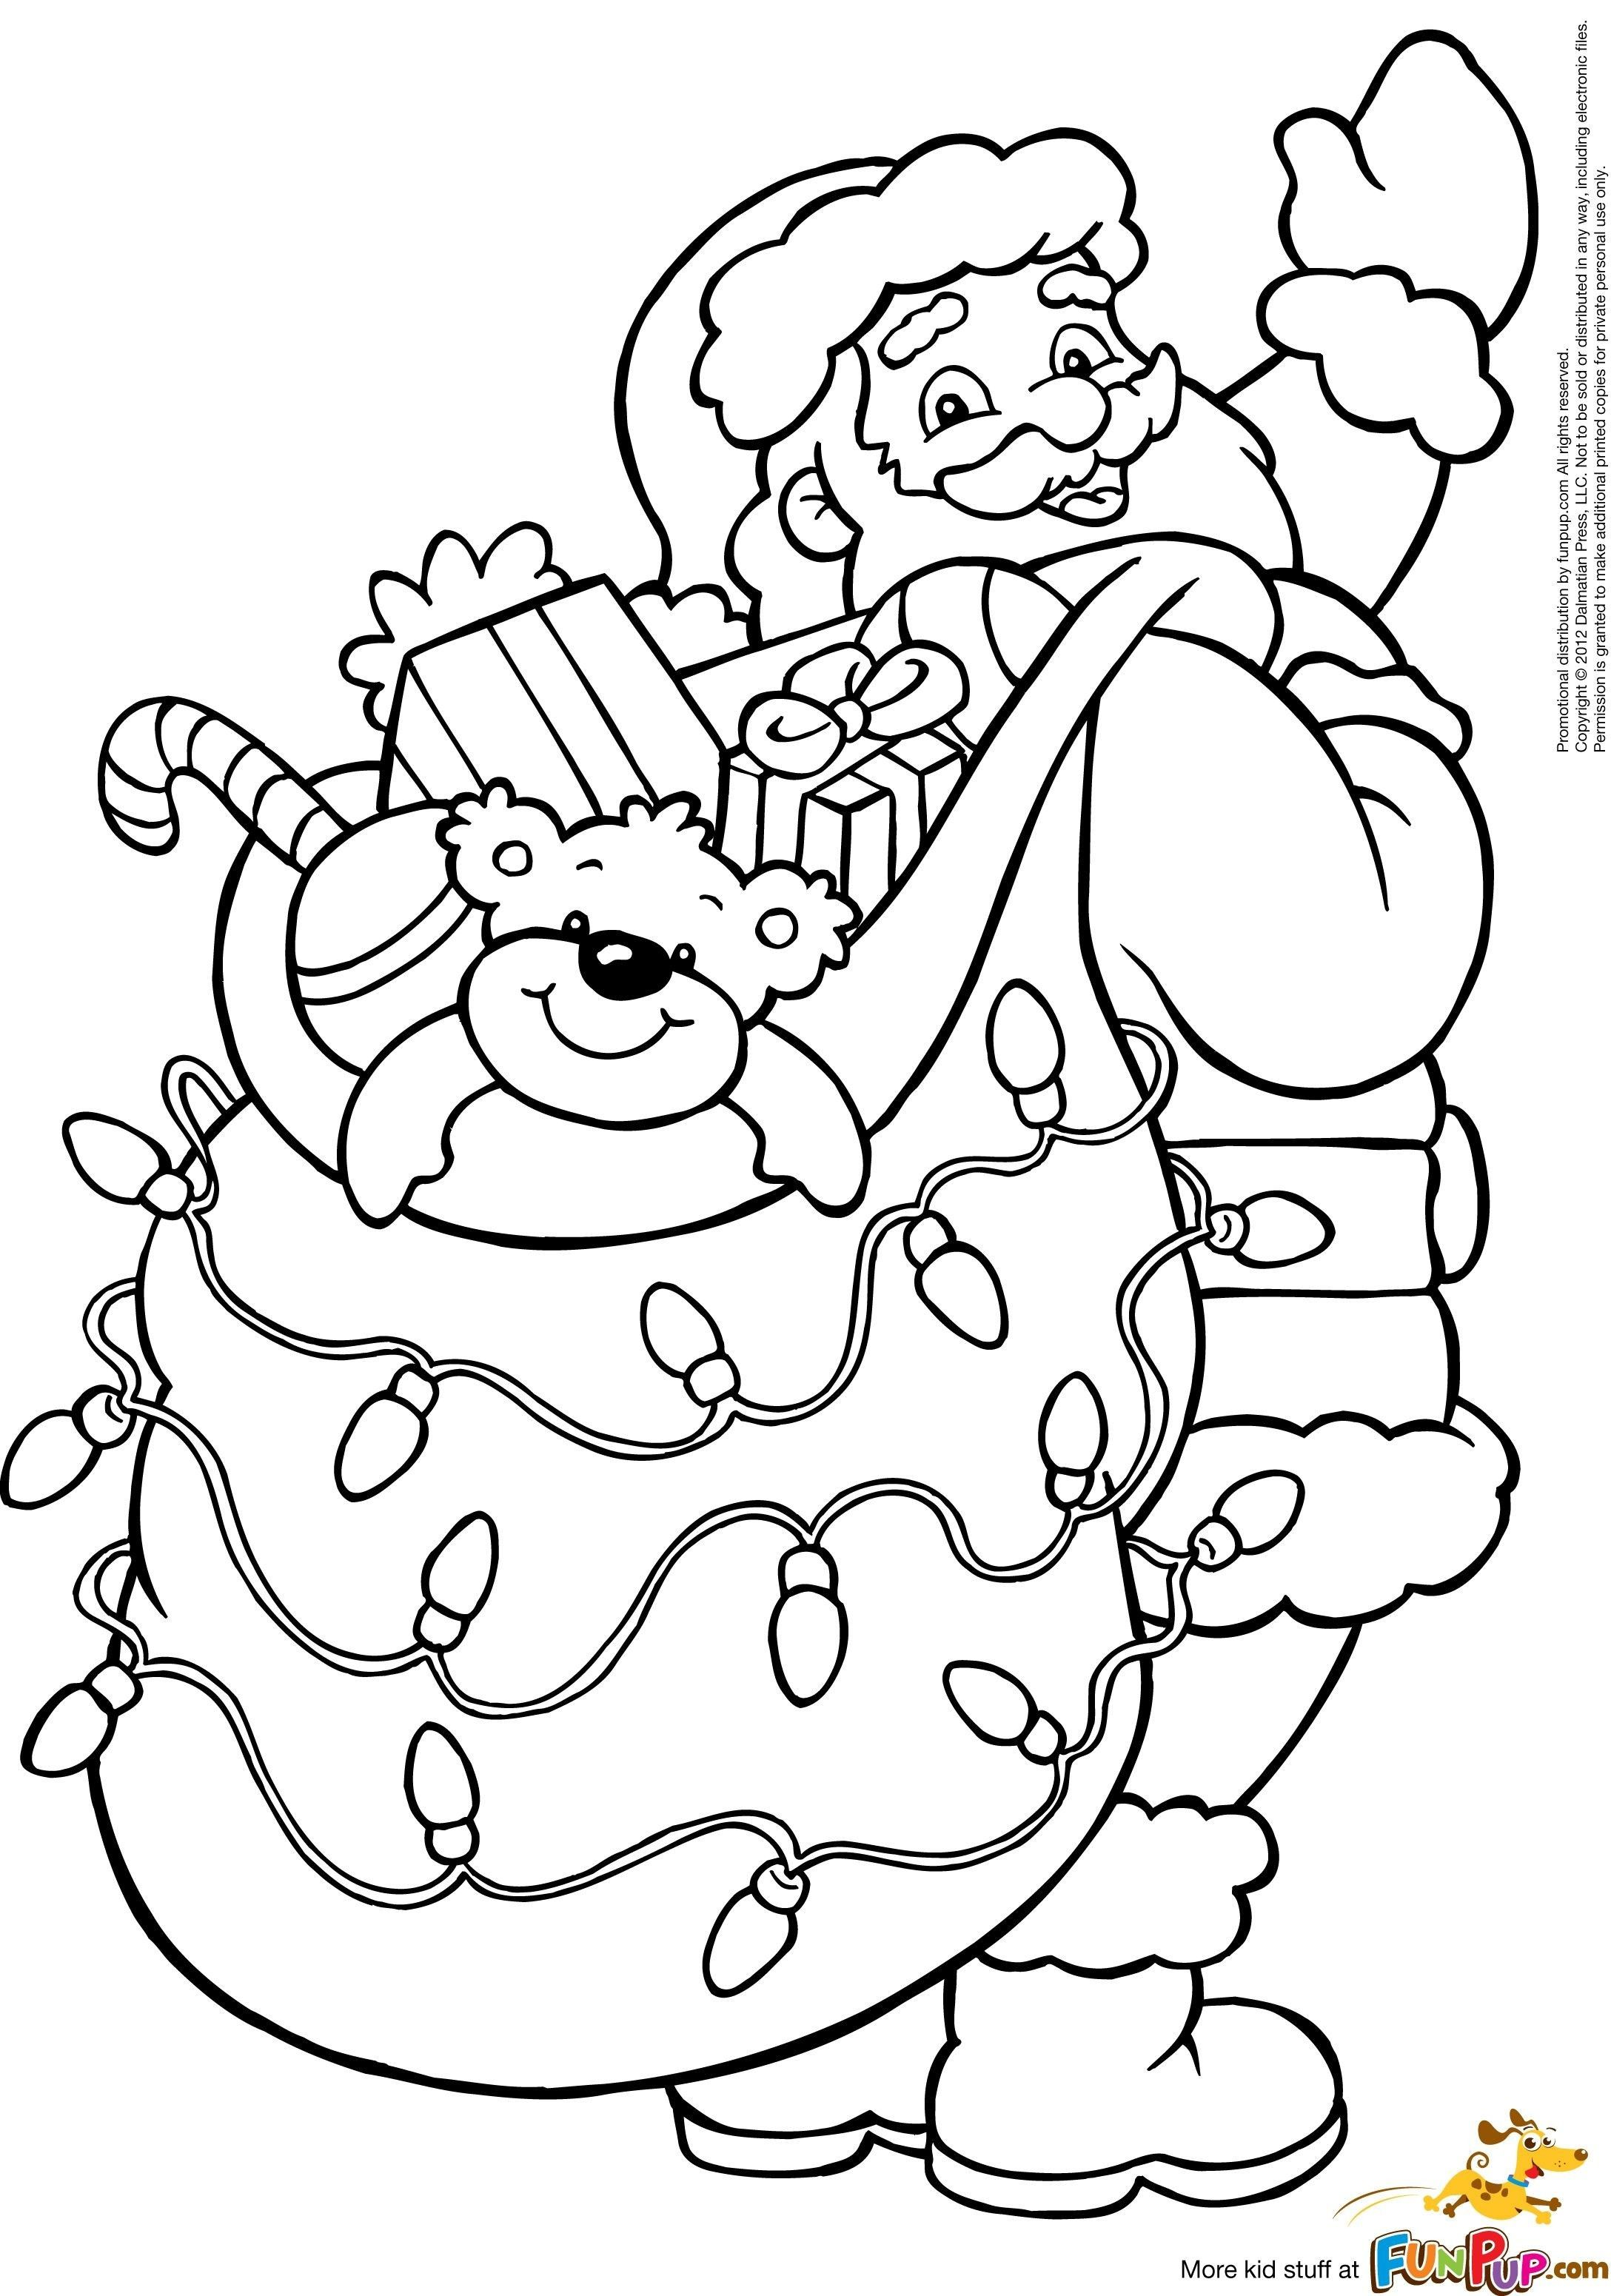 New Father Christmas Colouring Pages Coloring Coloringpages